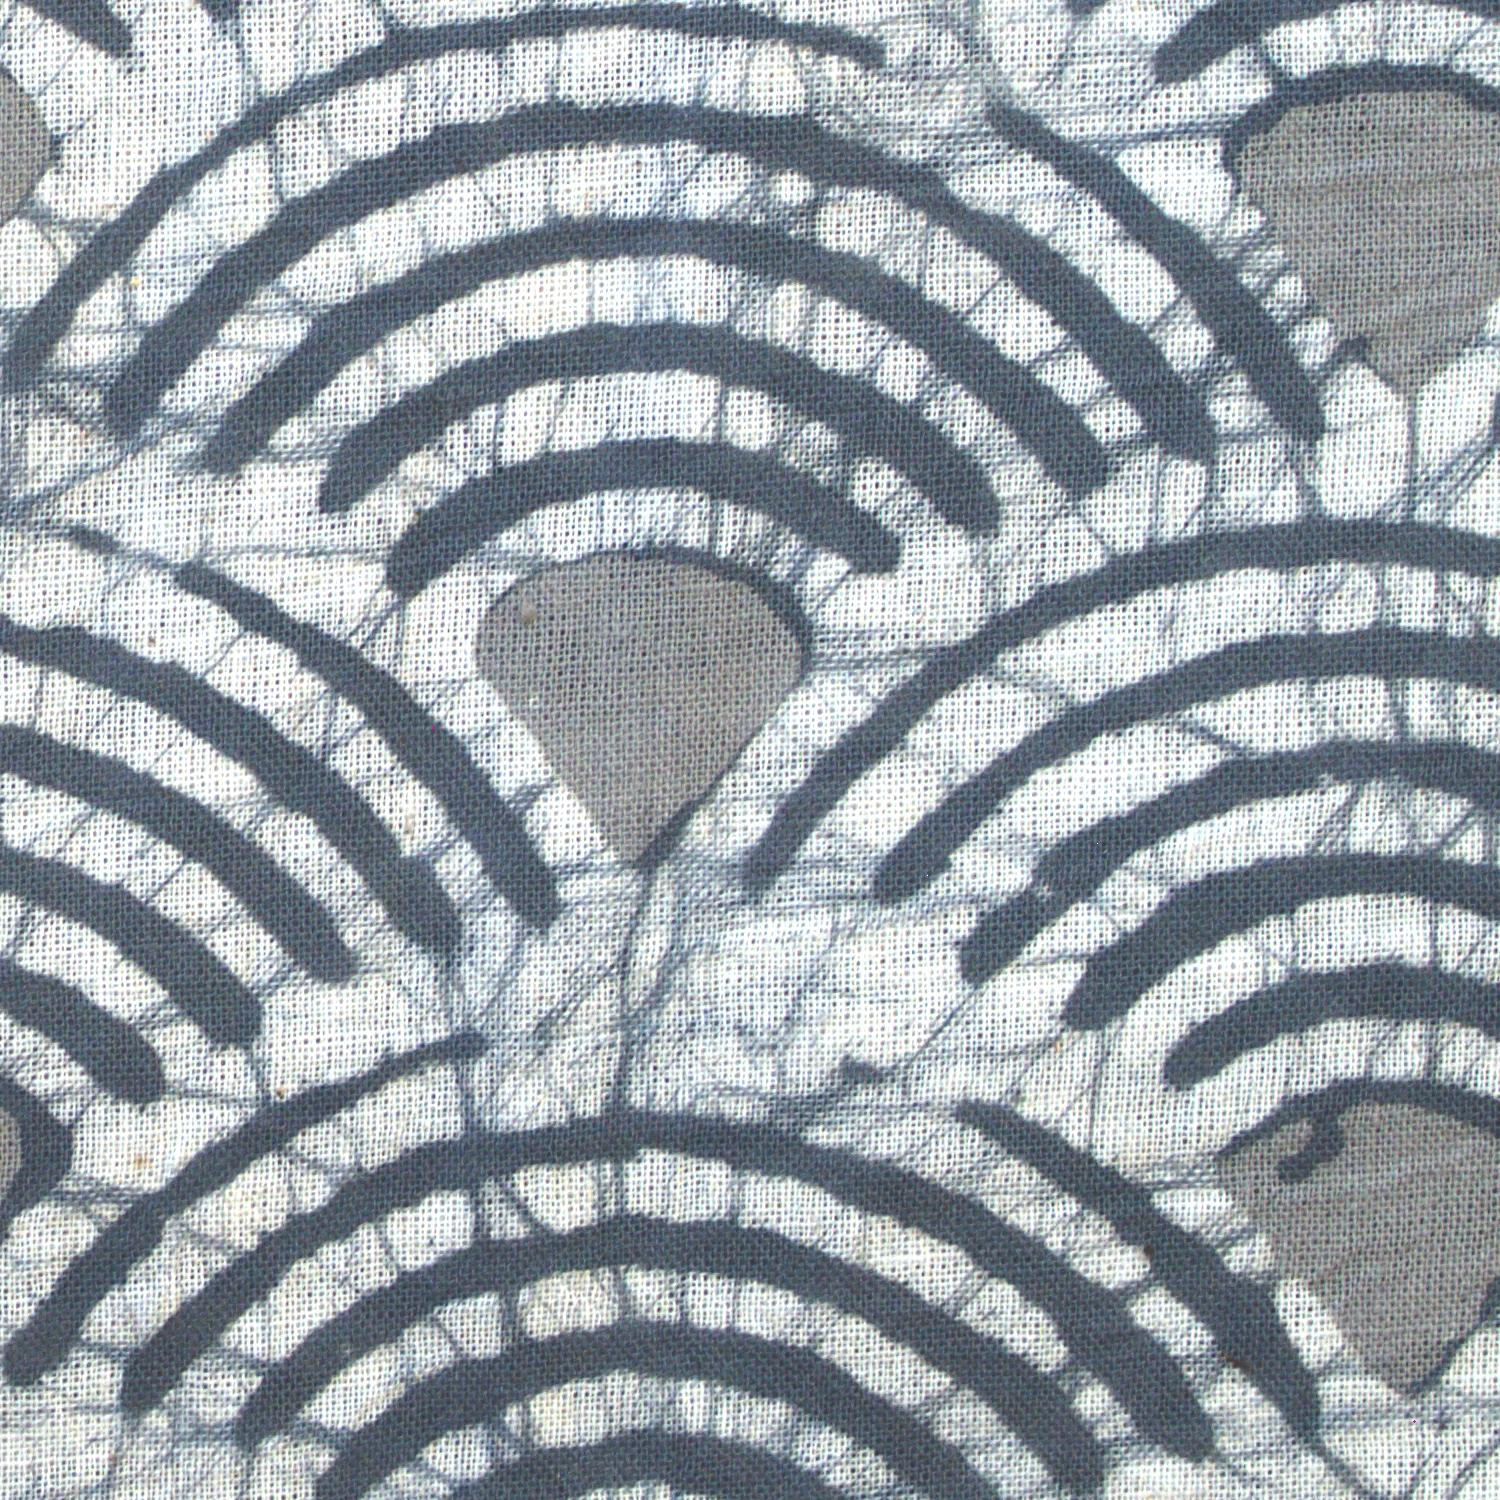 4 - SHA03 - 100% Block-Printed Batik Cotton Fabric From India - Batik - Grey Scales - Close Up